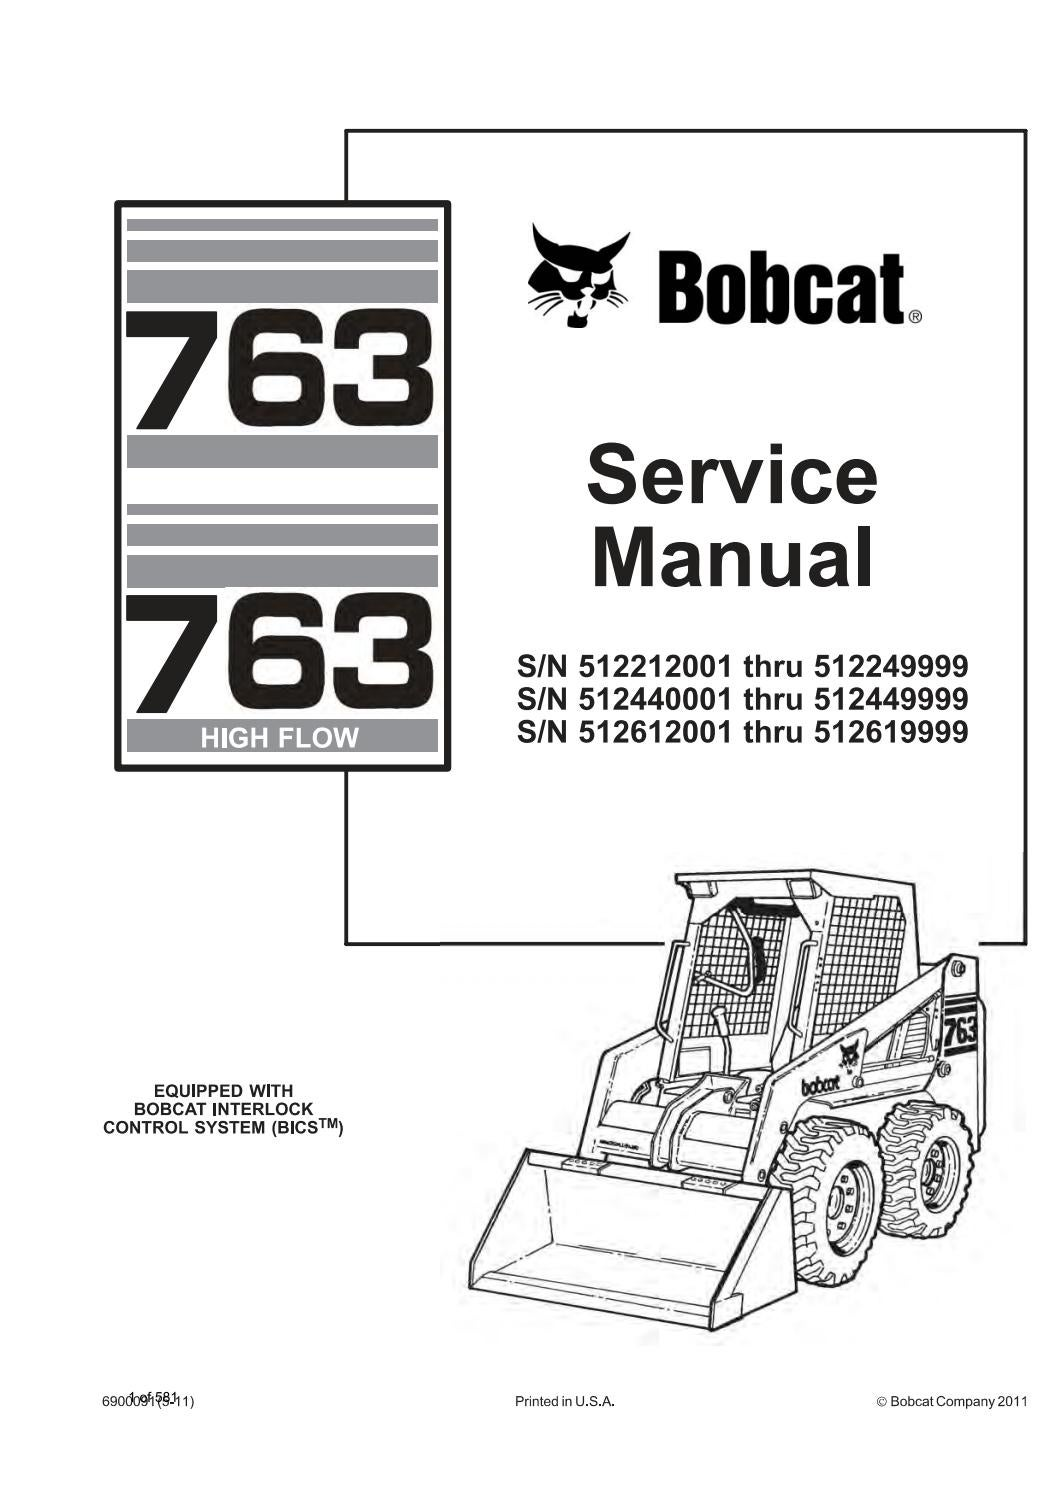 763 bobcat hydraulic schematic bobcat 763  763 high flow skid steer loader service repair manual  bobcat 763  763 high flow skid steer